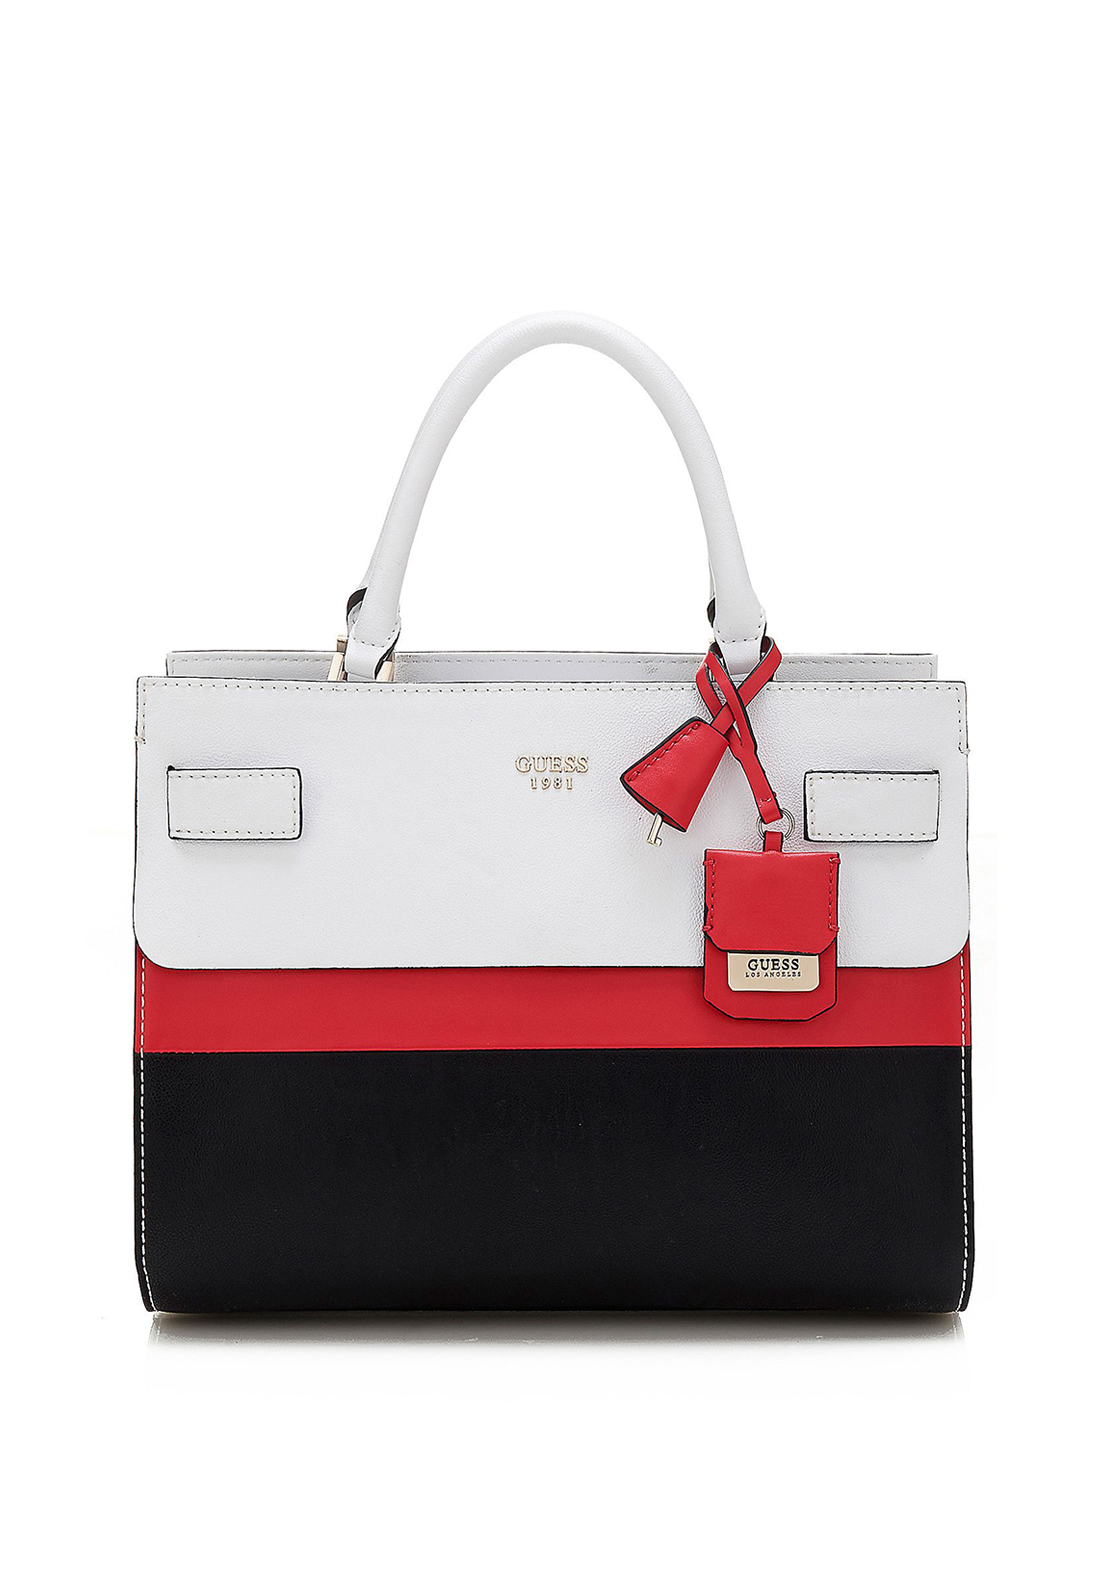 Guess Cate Satchel Bag, White, Red & Black